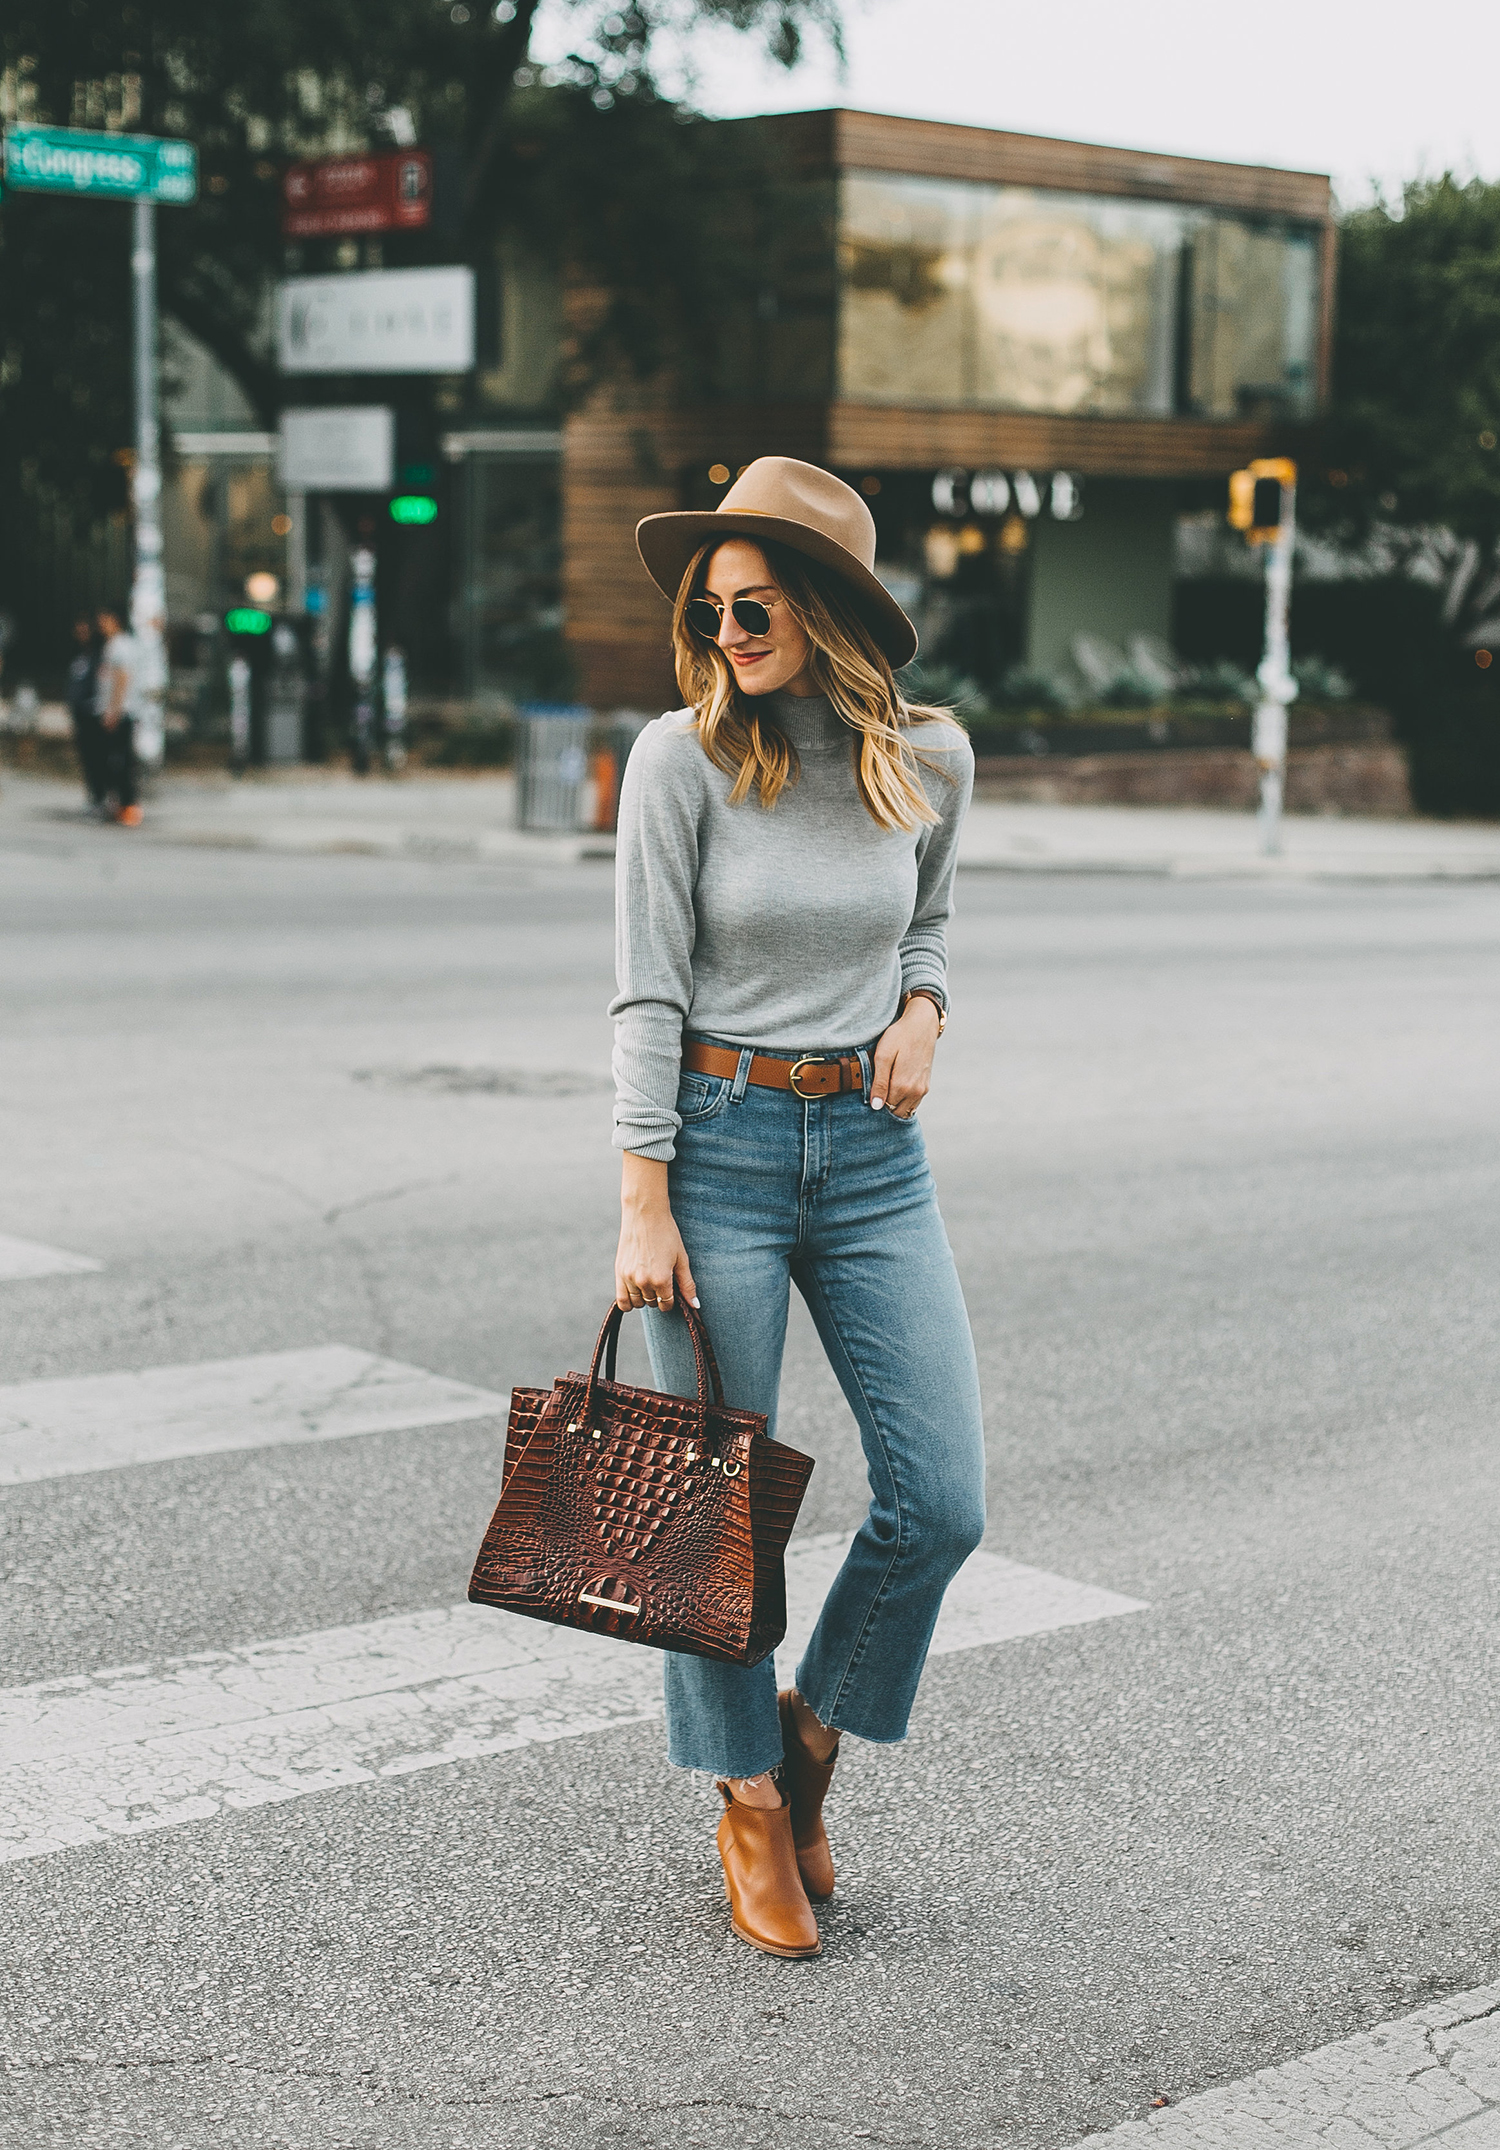 livvyland-blog-olivia-watson-south-congress-avenue-austin-texas-fashion-life-style-blogger-bdg-high-waist-crop-flare-jeans-8